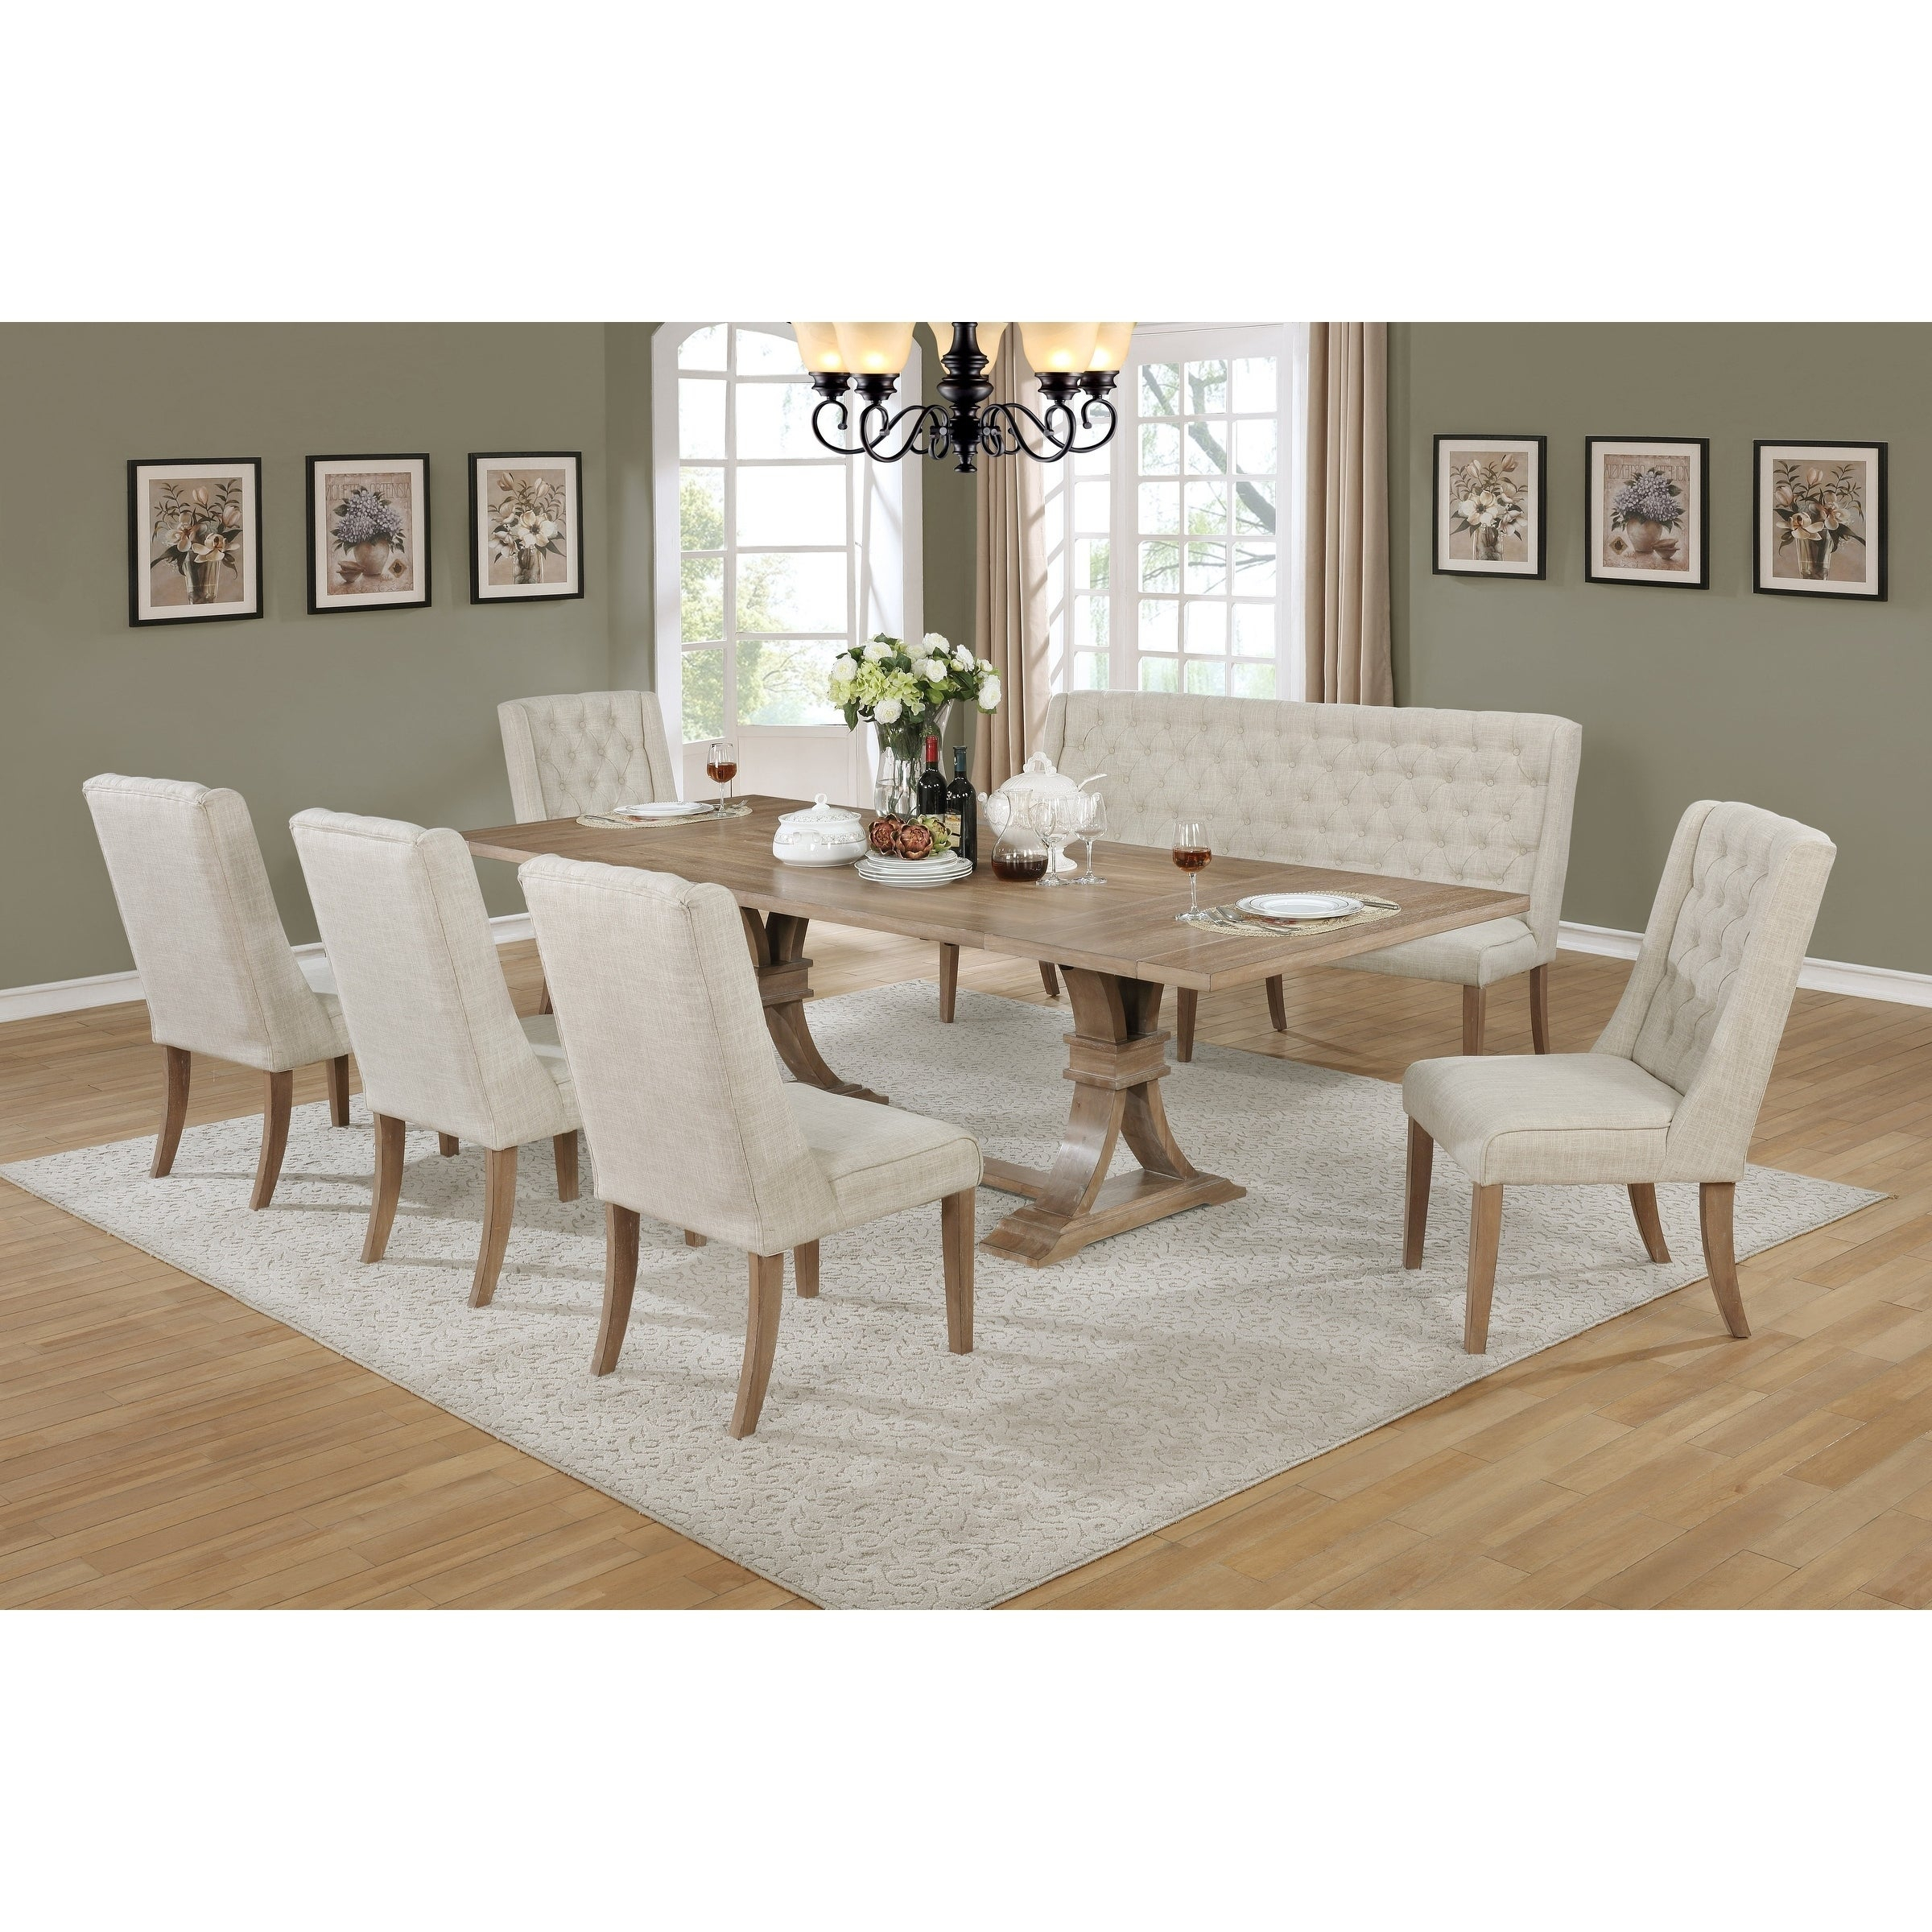 Buy 7 Piece Sets Kitchen & Dining Room Sets Online At Overstock With Regard To Well Liked Autberry 5 Piece Dining Sets (#6 of 20)